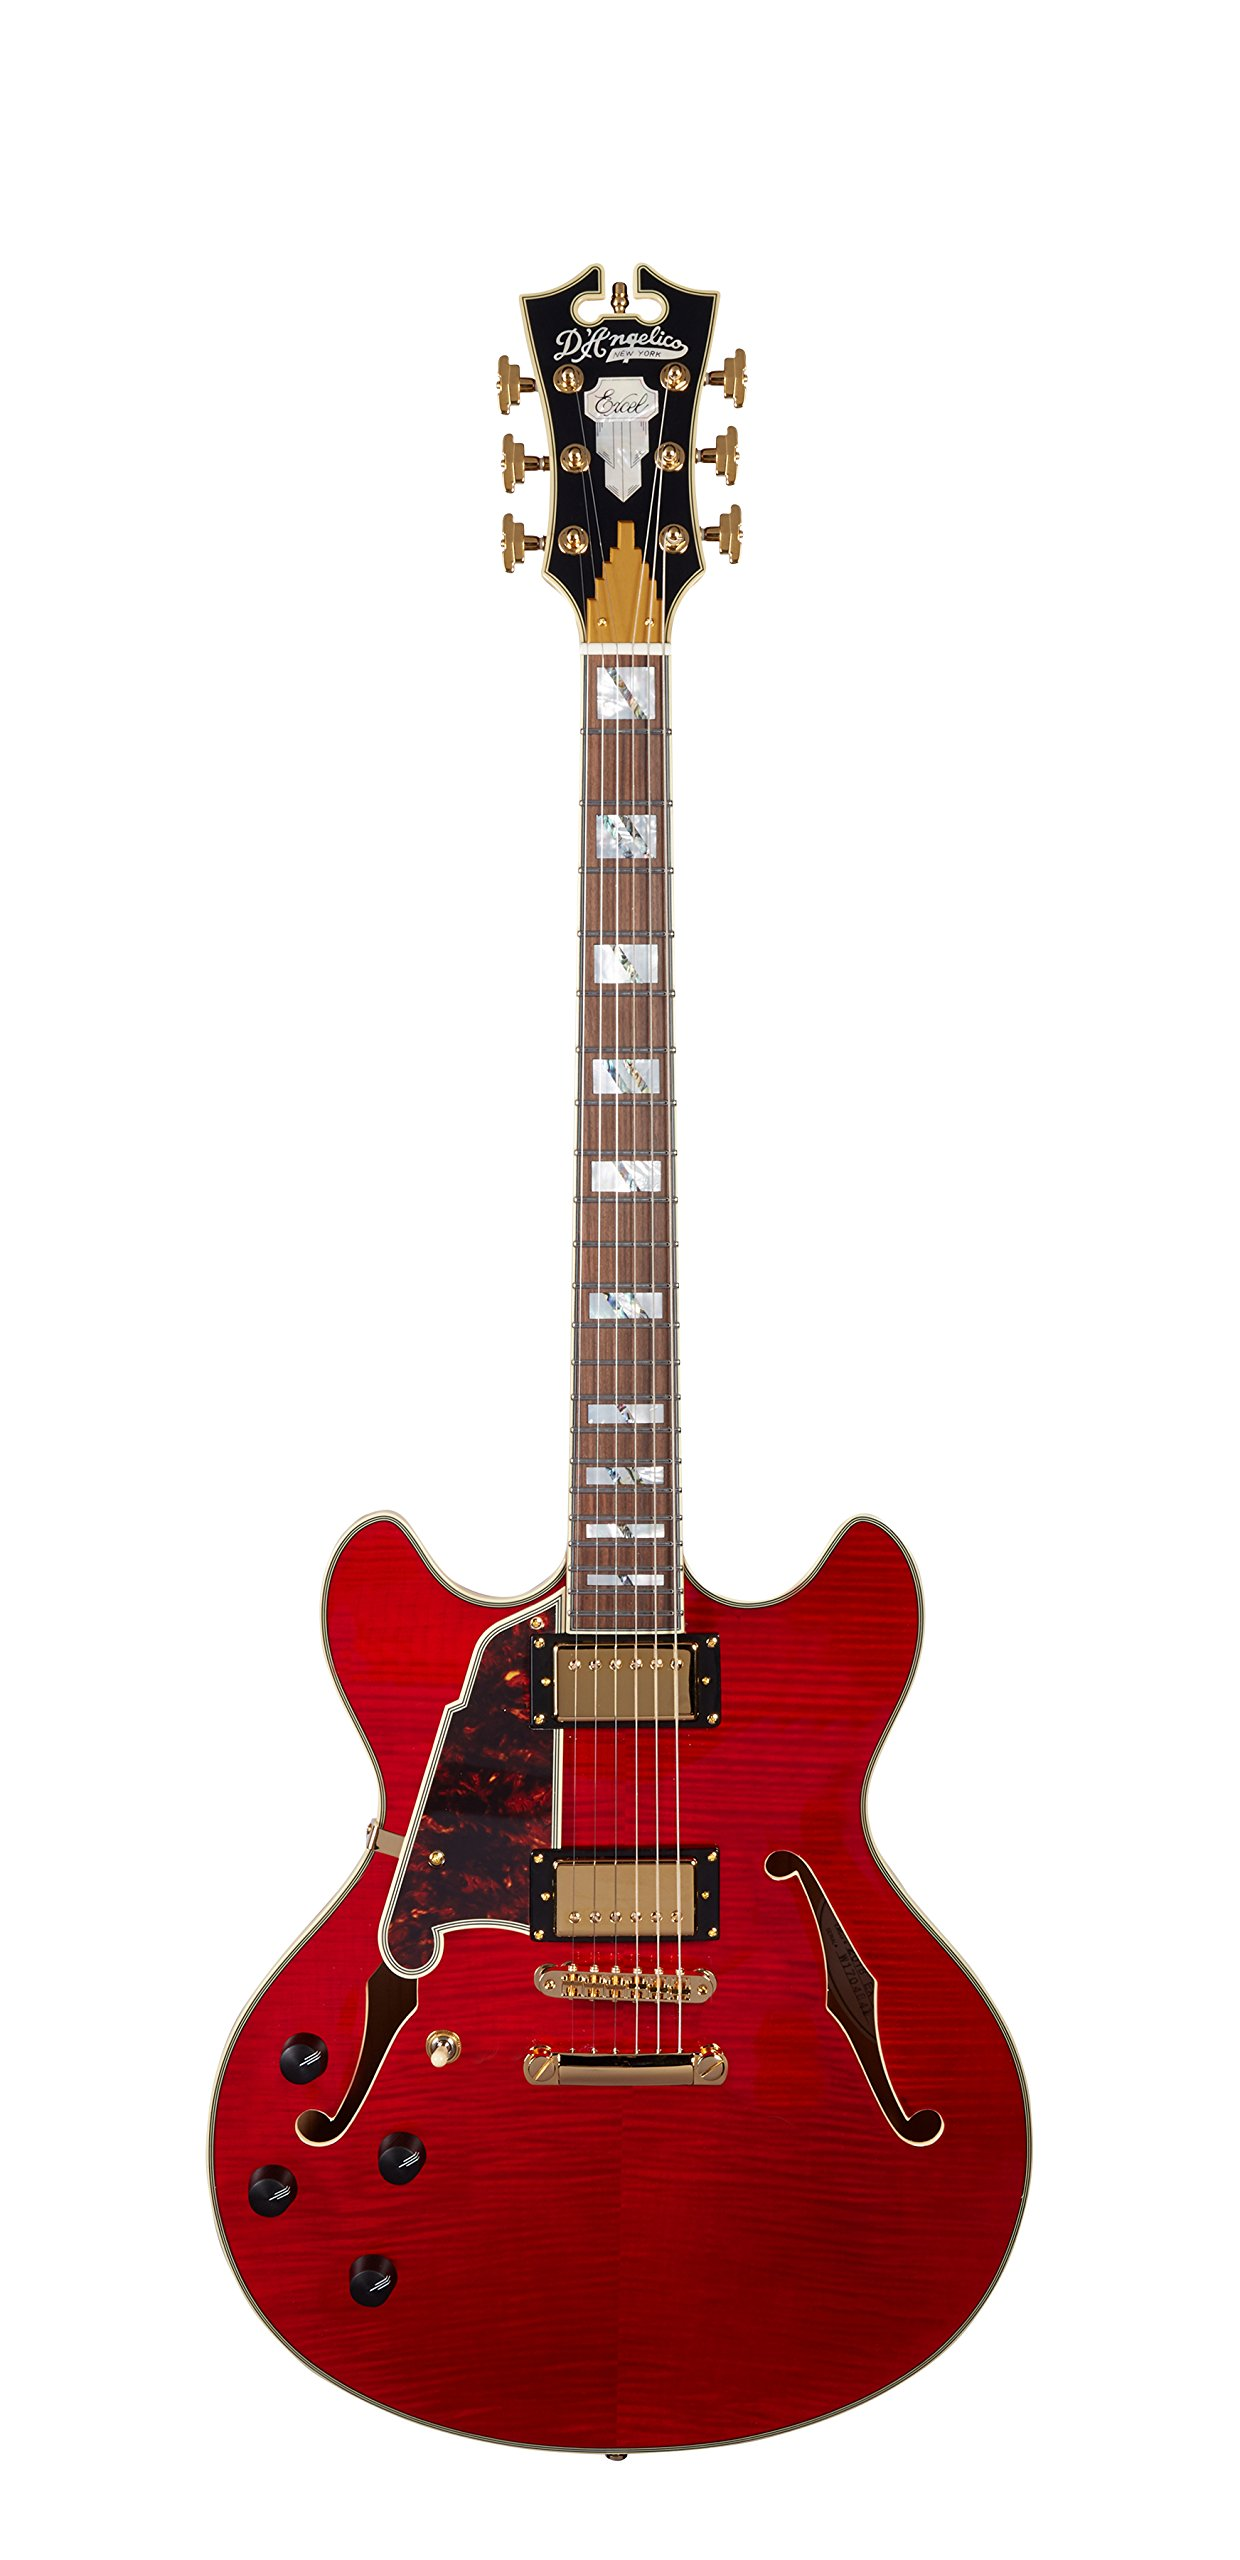 Cheap D Angelico Excel DC Semi-Hollow Lefty Electric Guitar - Cherry Black Friday & Cyber Monday 2019